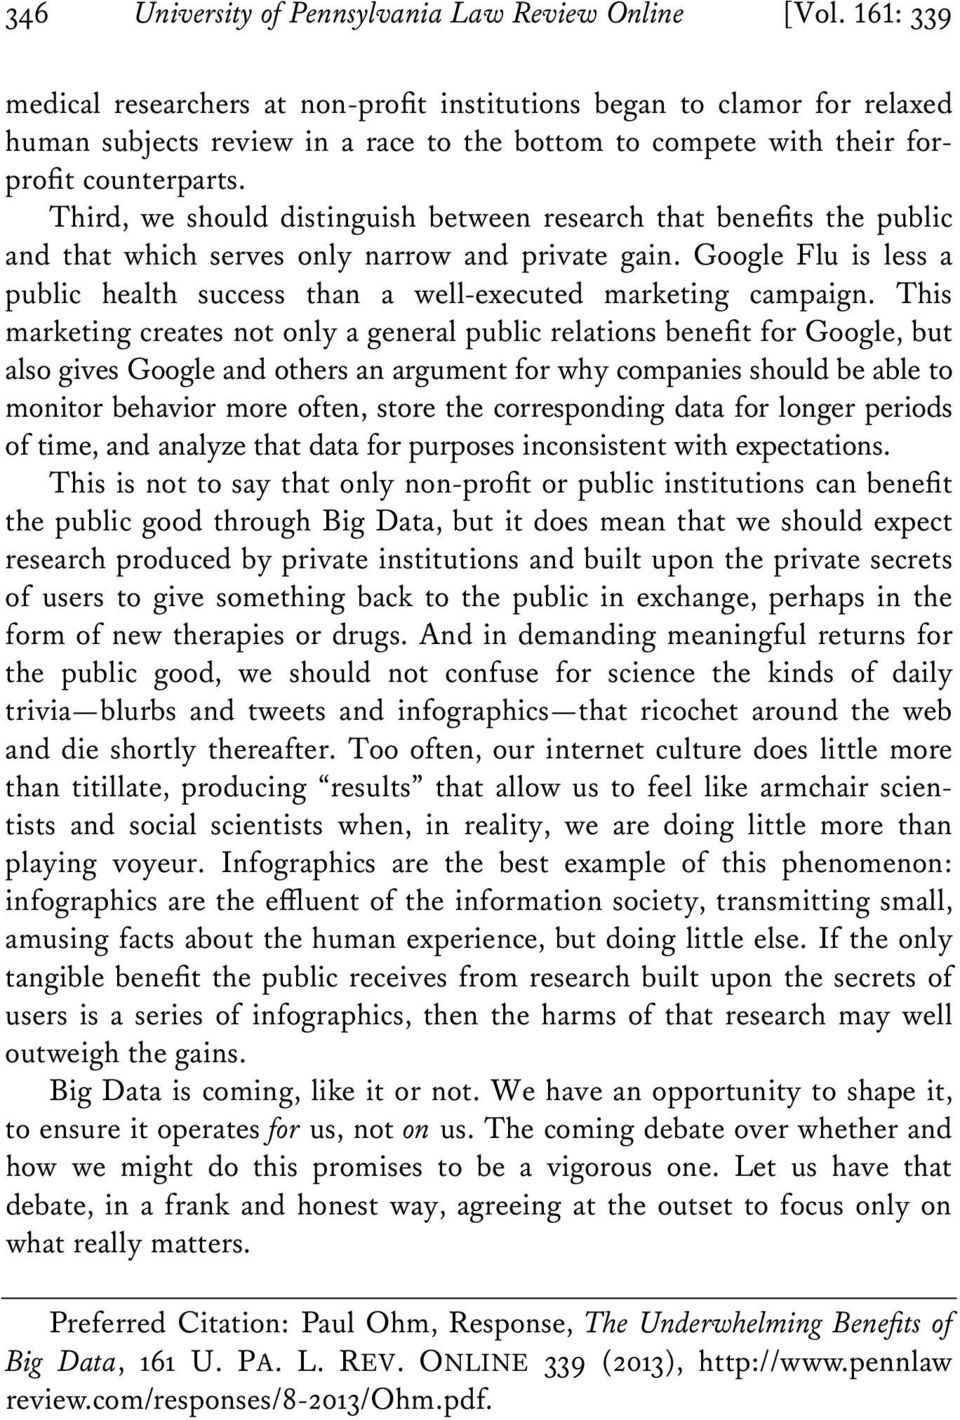 Third, we should distinguish between research that benefits the public and that which serves only narrow and private gain.